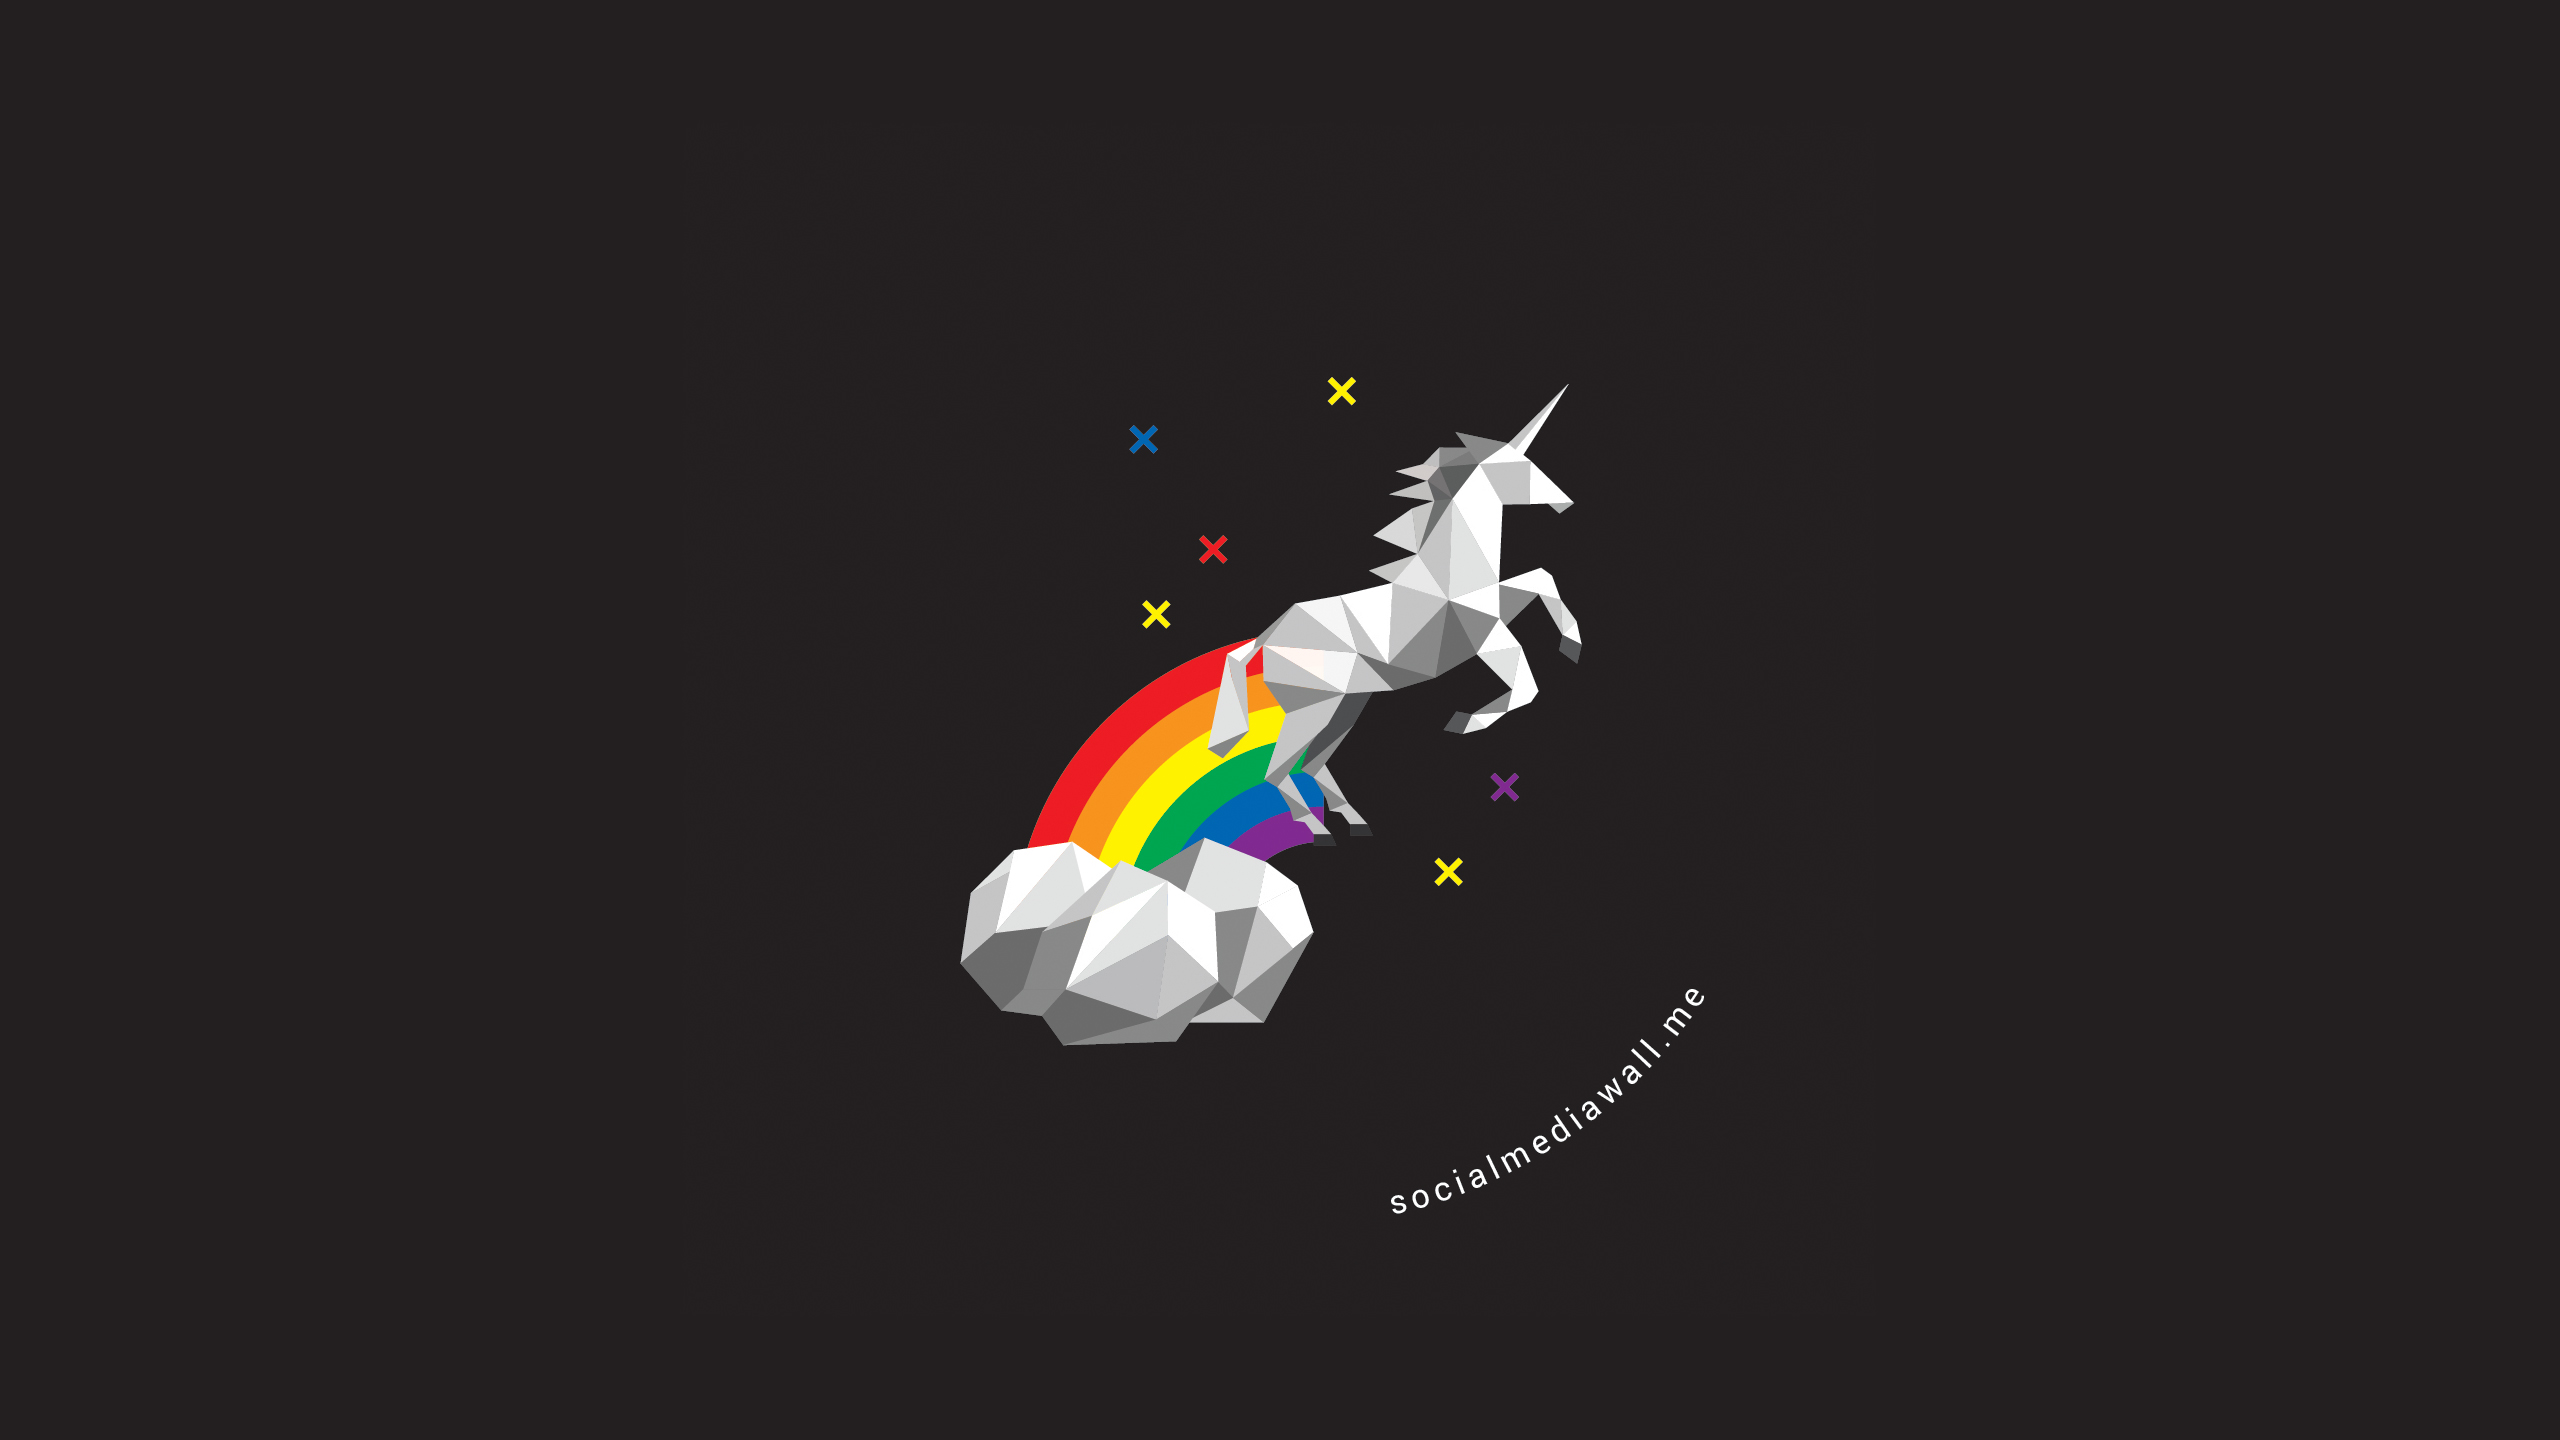 unicorn wallpapers full hd - photo #37